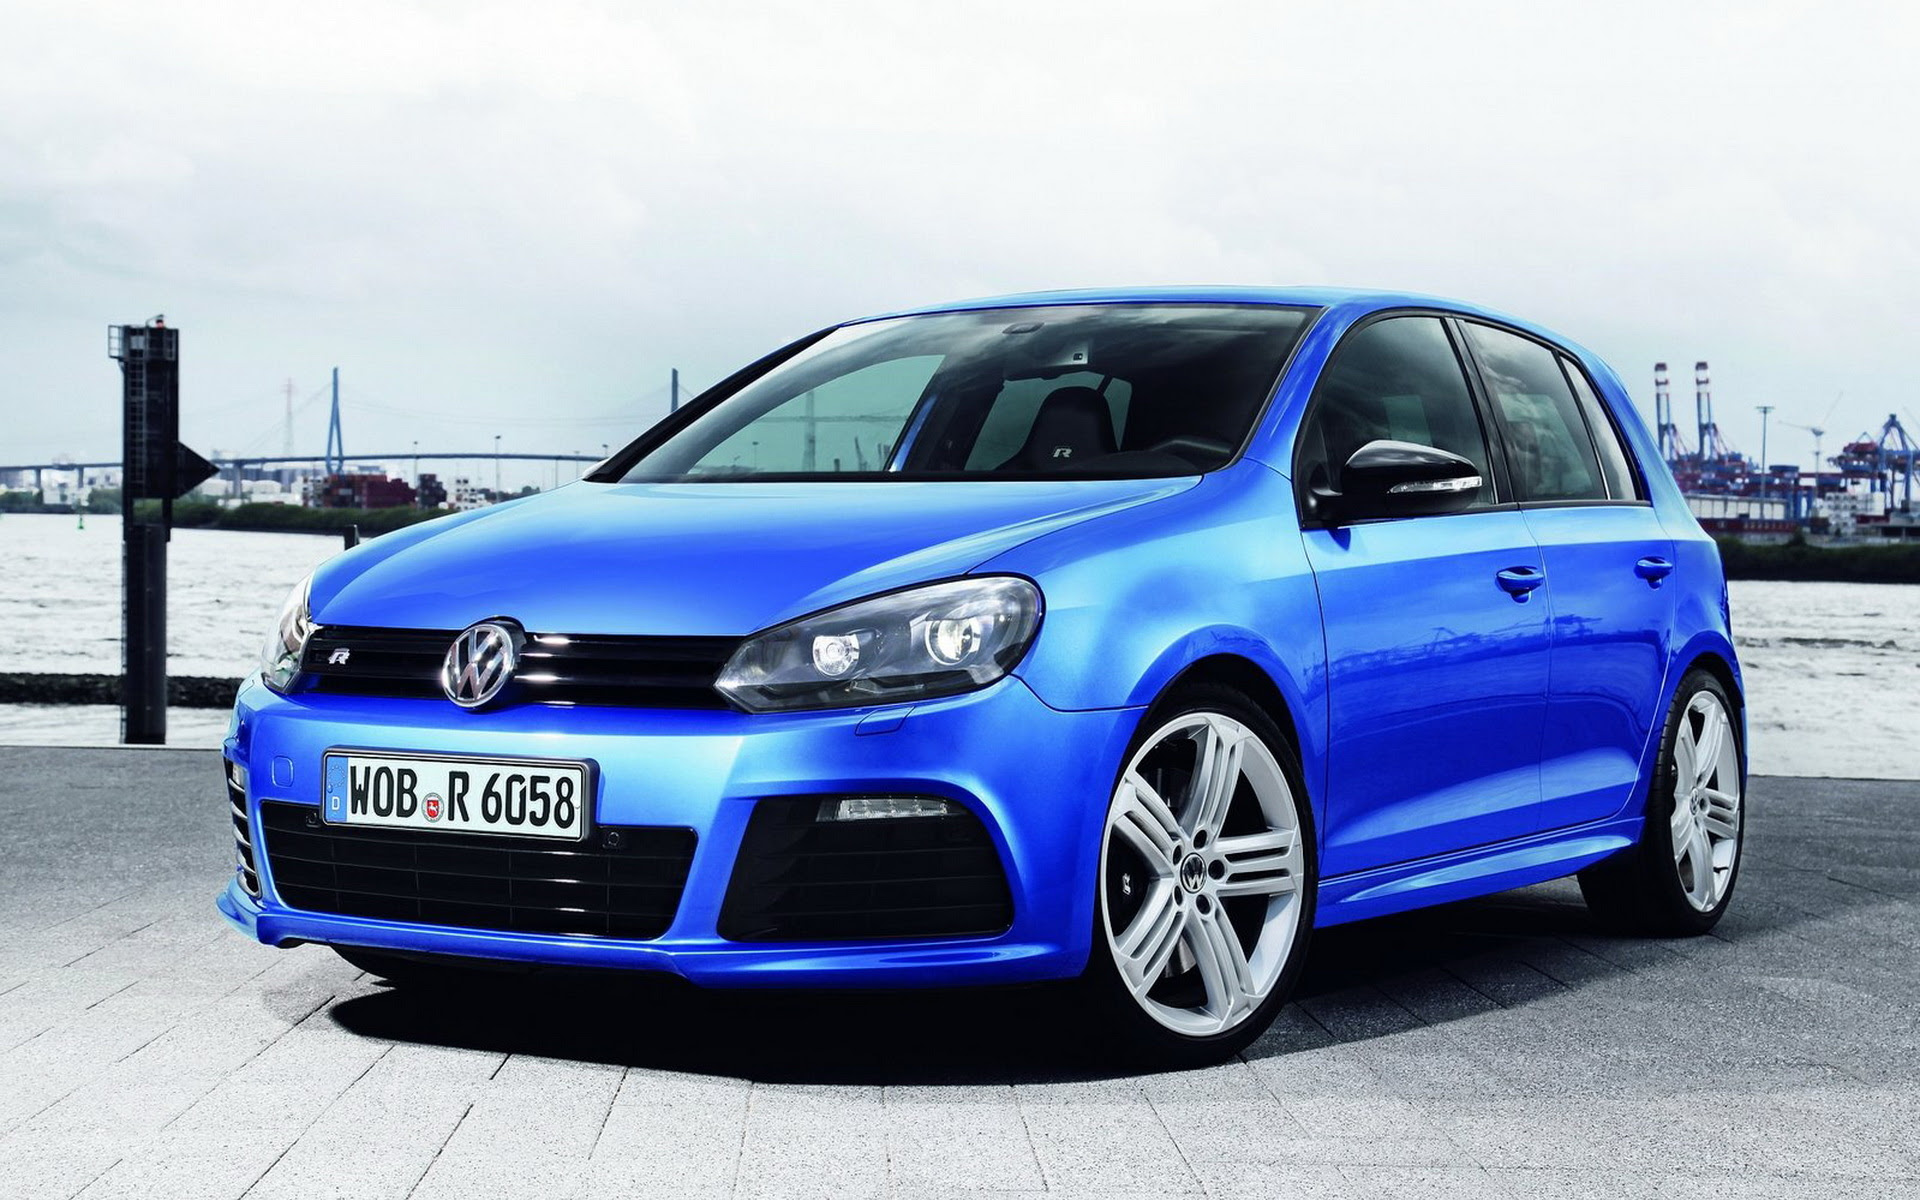 Volkswagen Golf R 2010 wallpapers and images  wallpapers, pictures, photos